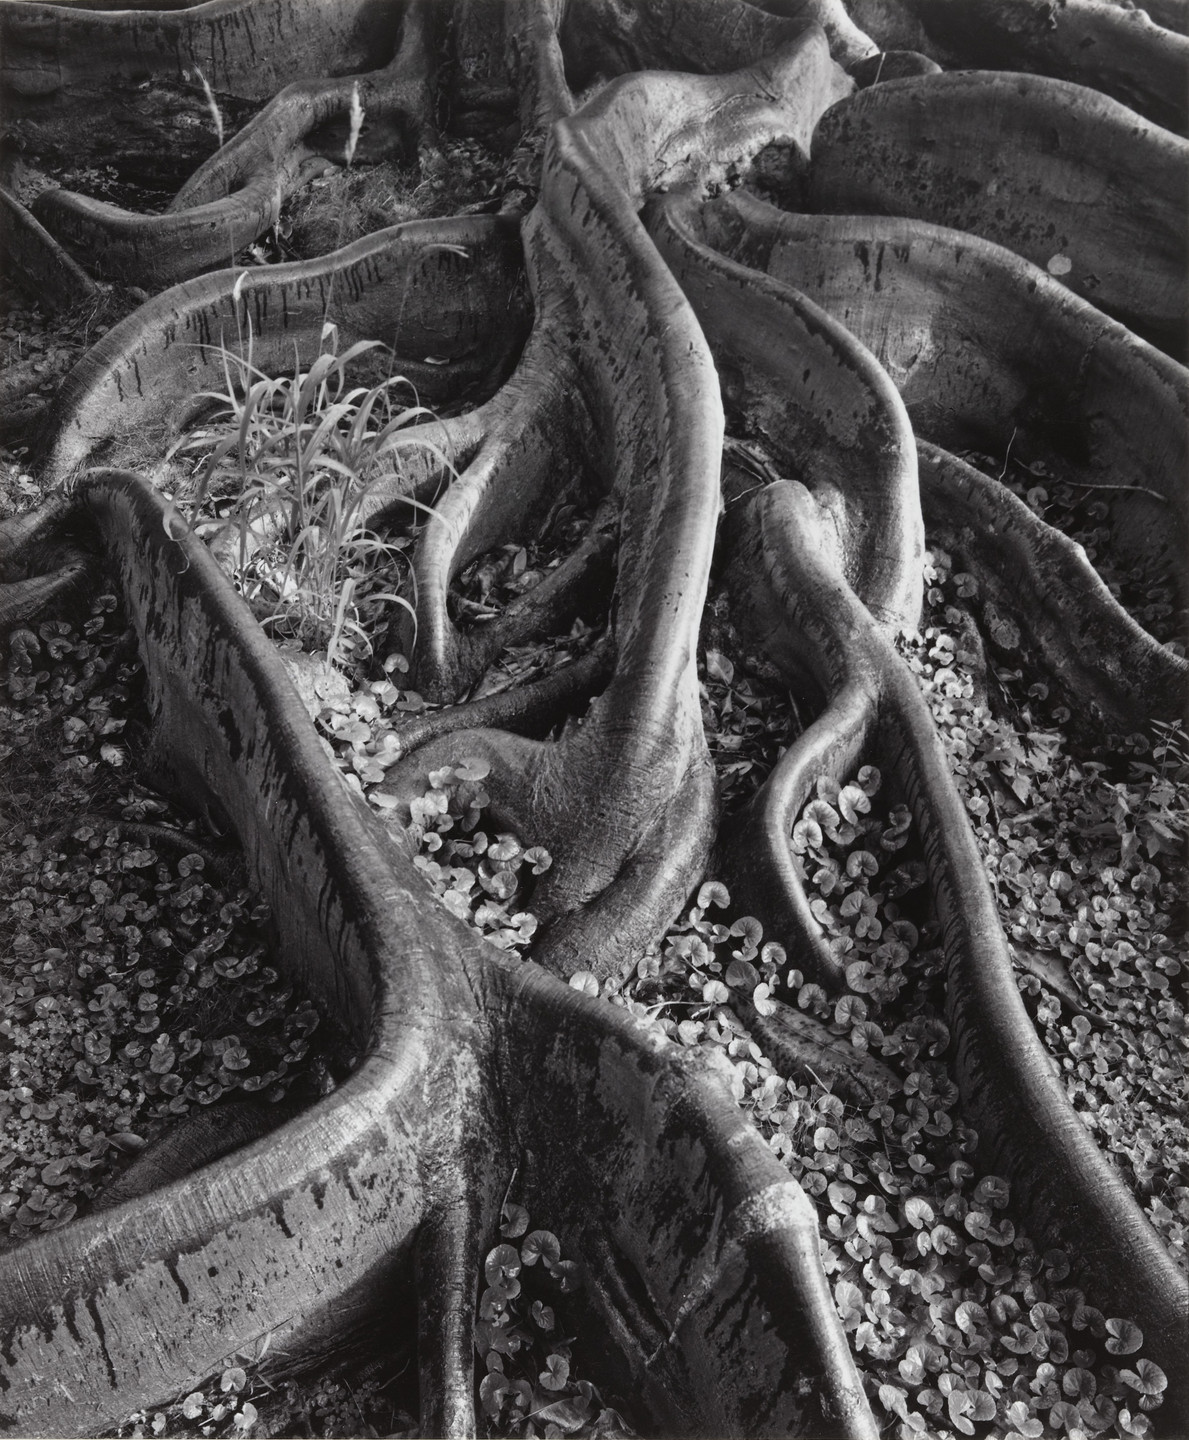 Ansel Adams. Roots, Foster Gardens, Honolulu. 1948